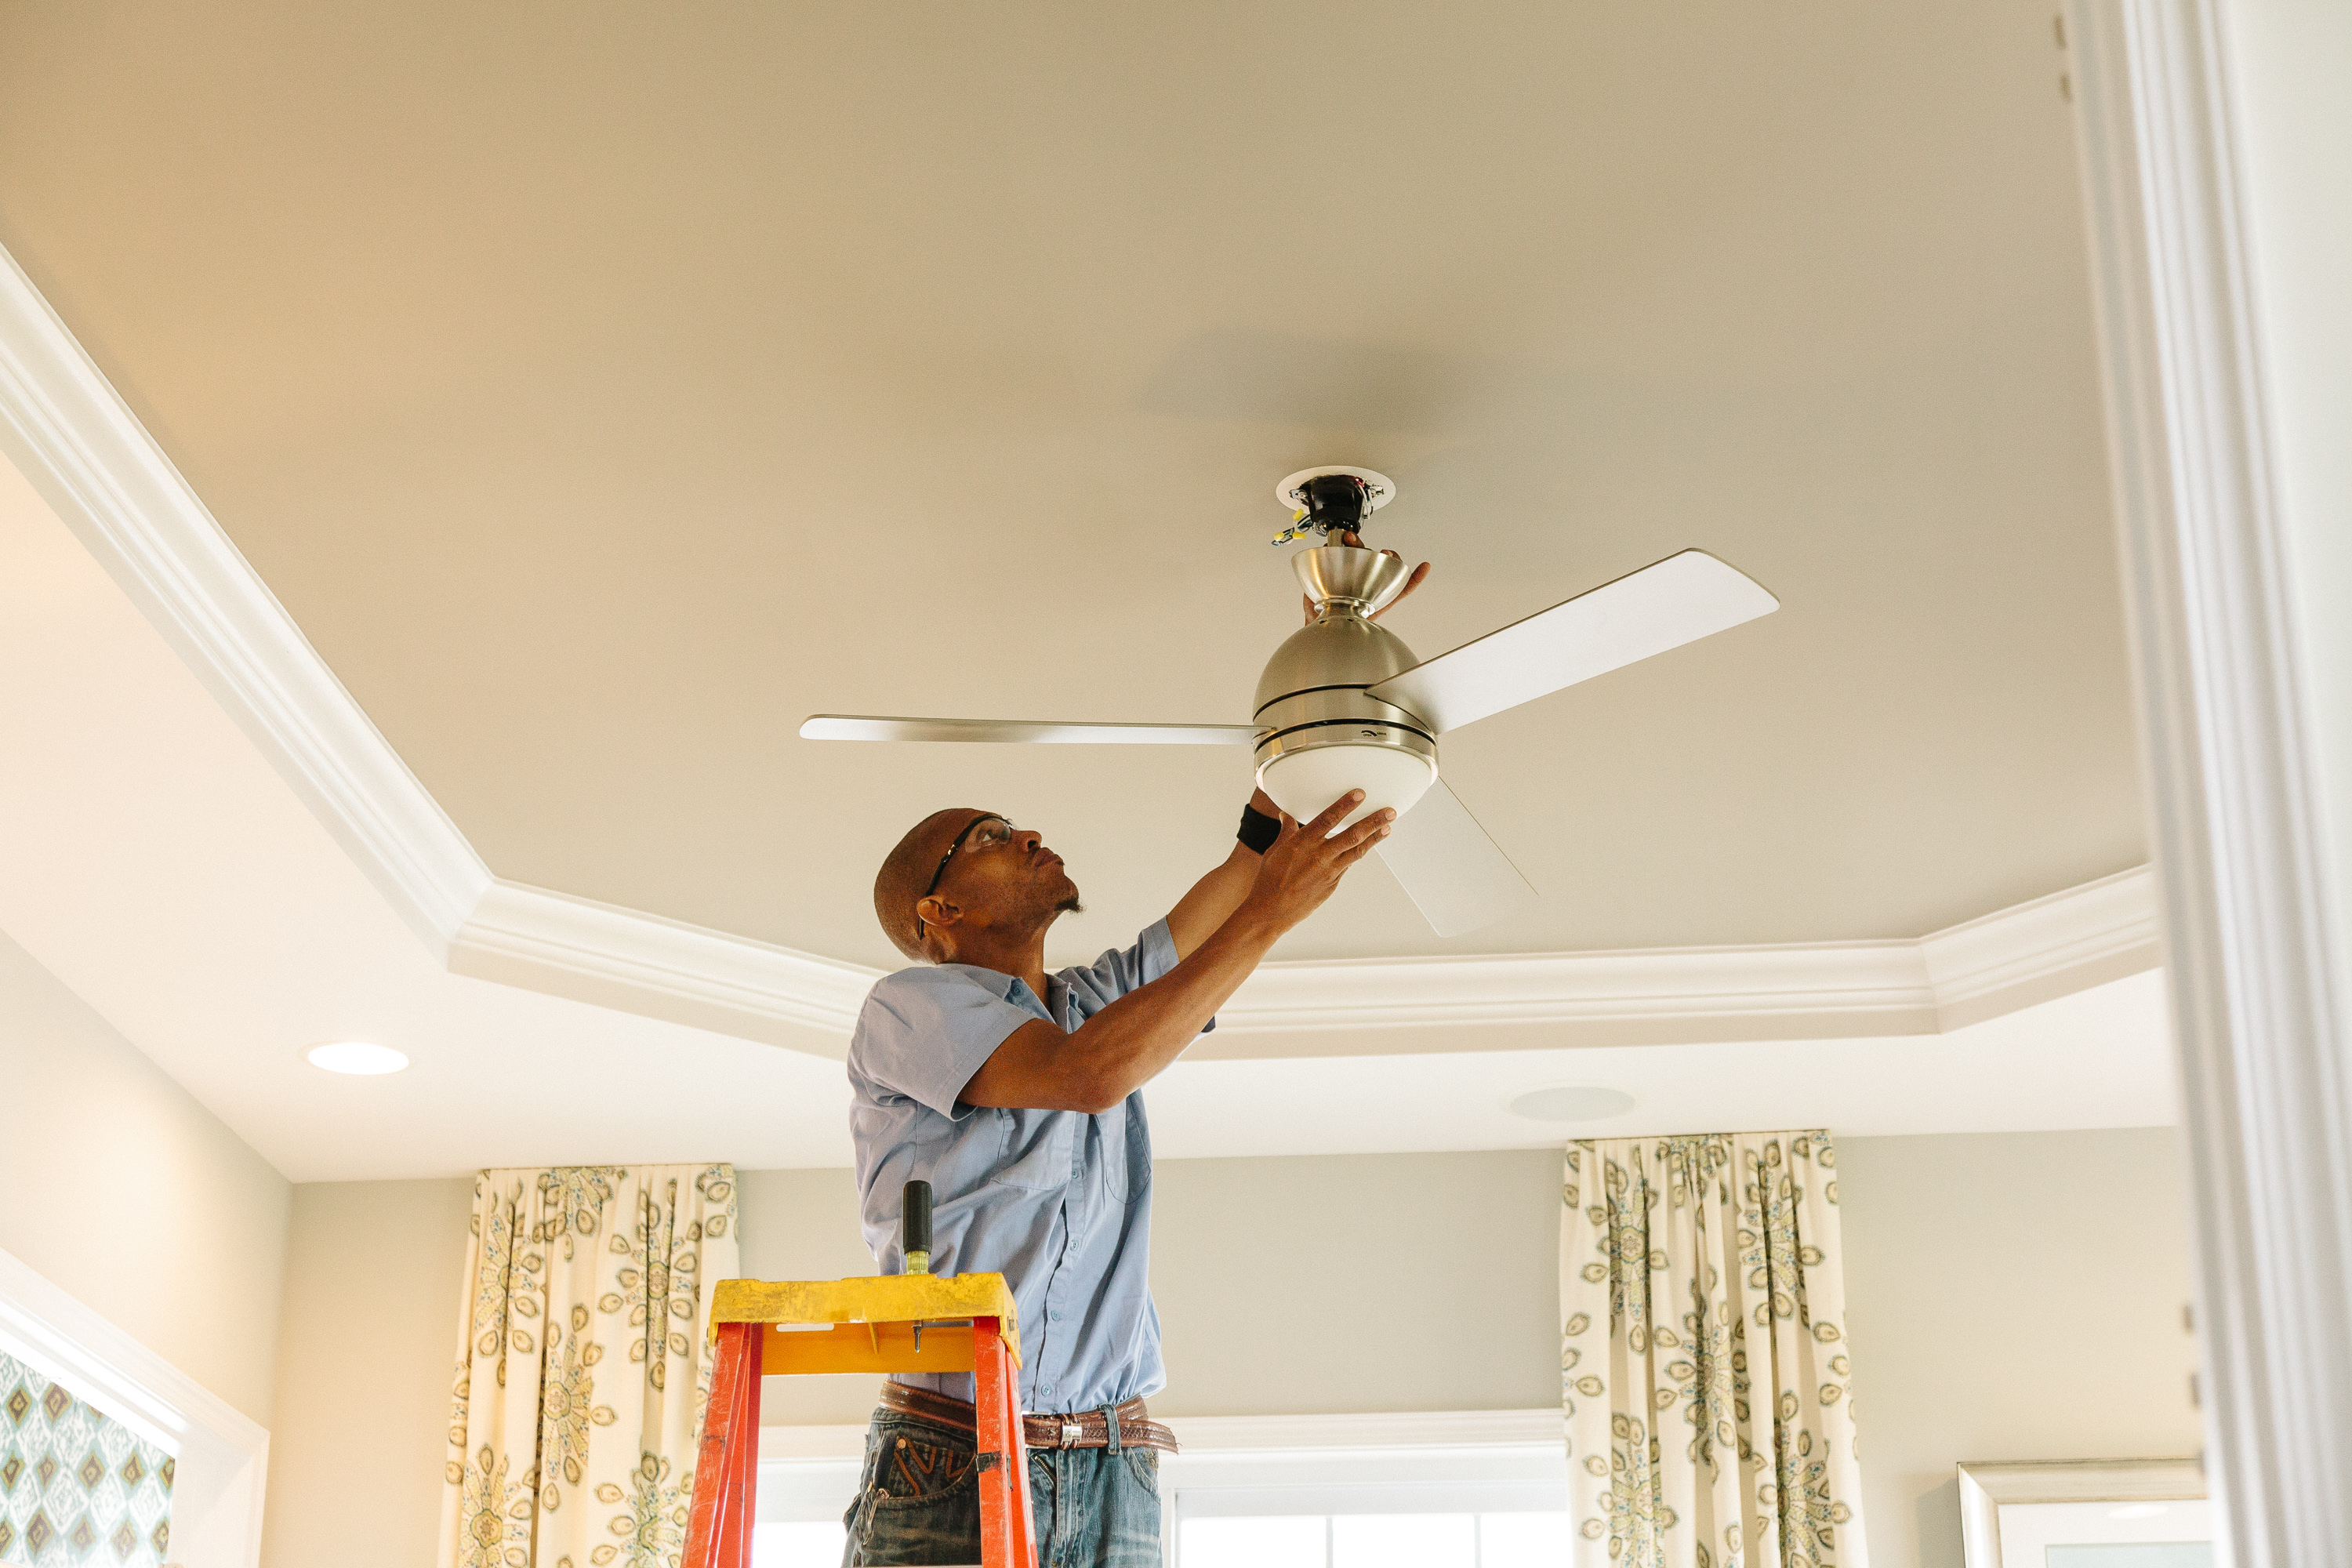 Image of Ceiling Fan Installation by Southern Electric in Leesburg VA